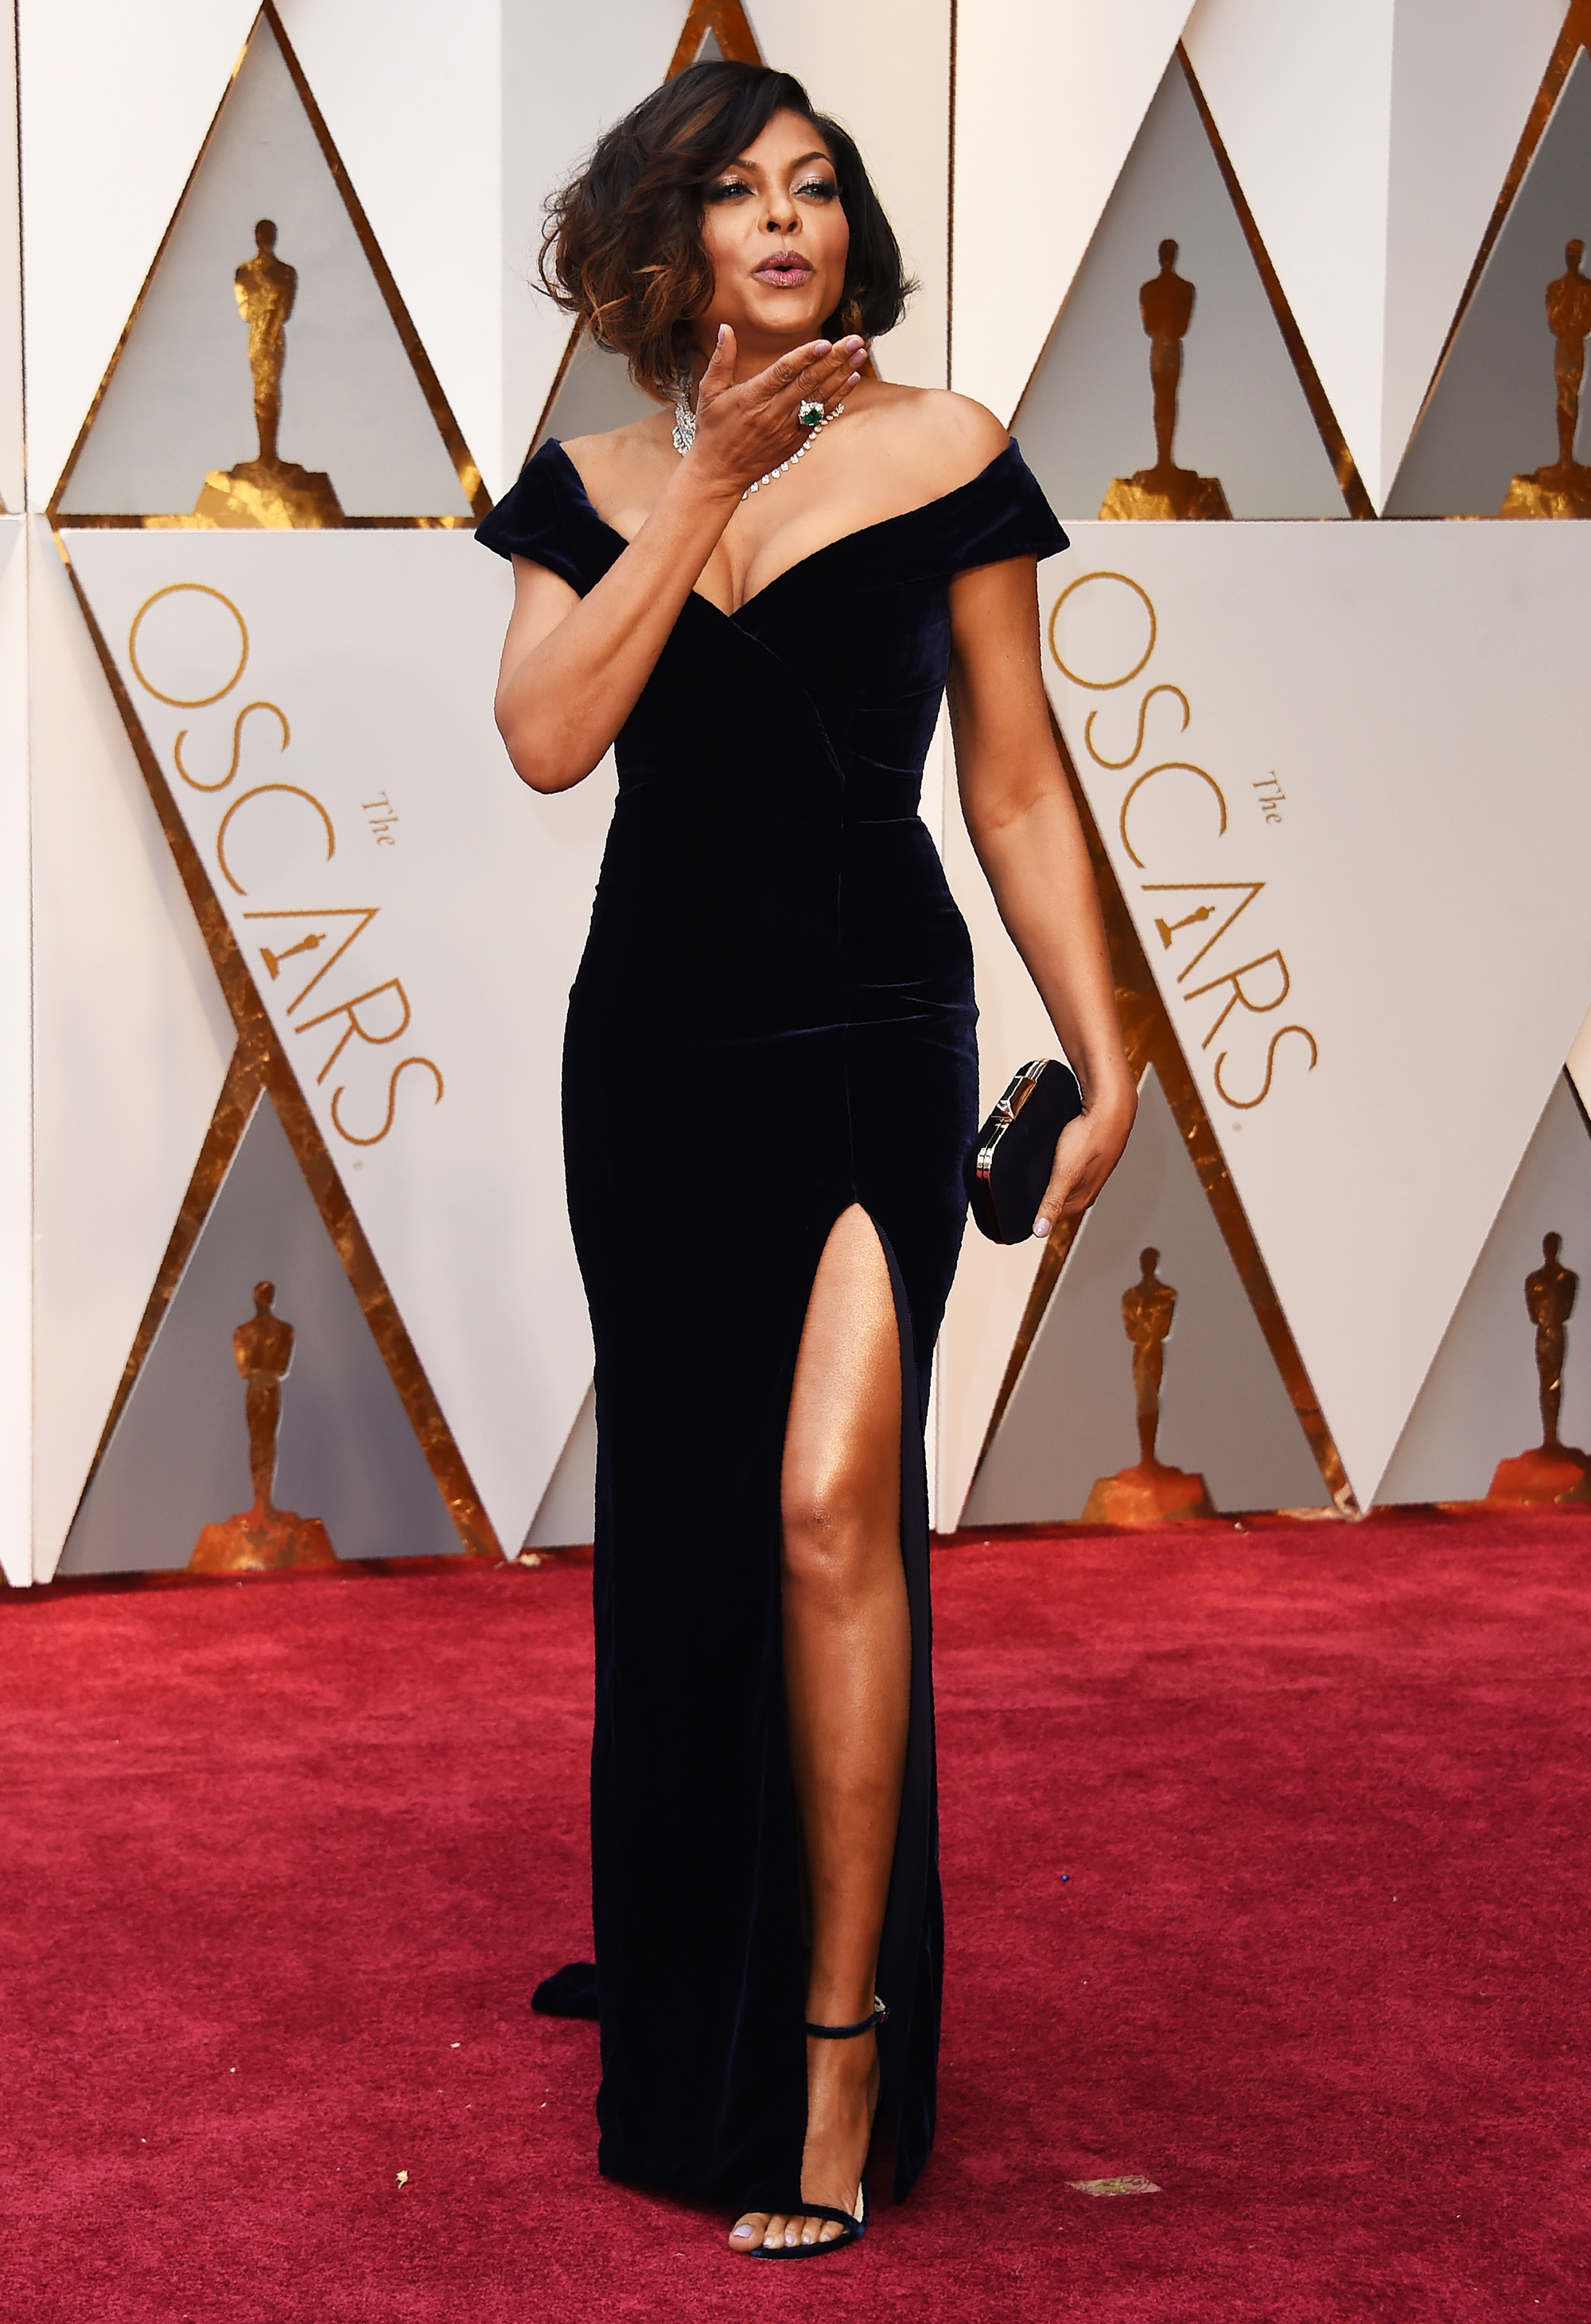 Taraji P. Henson on the red carpet for the 89th Oscars, on Feb. 26, 2017 in Hollywood, Calif.